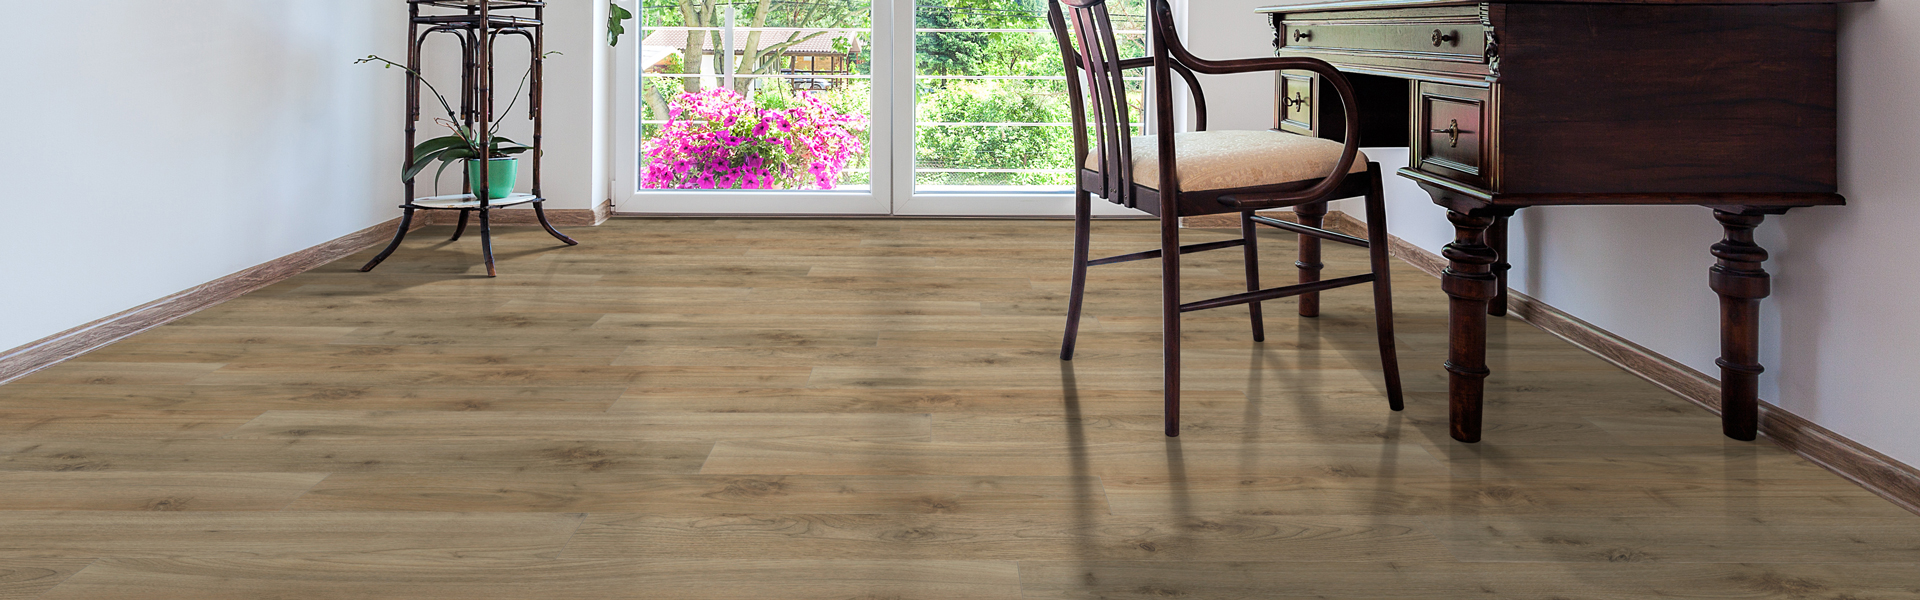 Marco Polo 1302 Laminate Your Homestyle